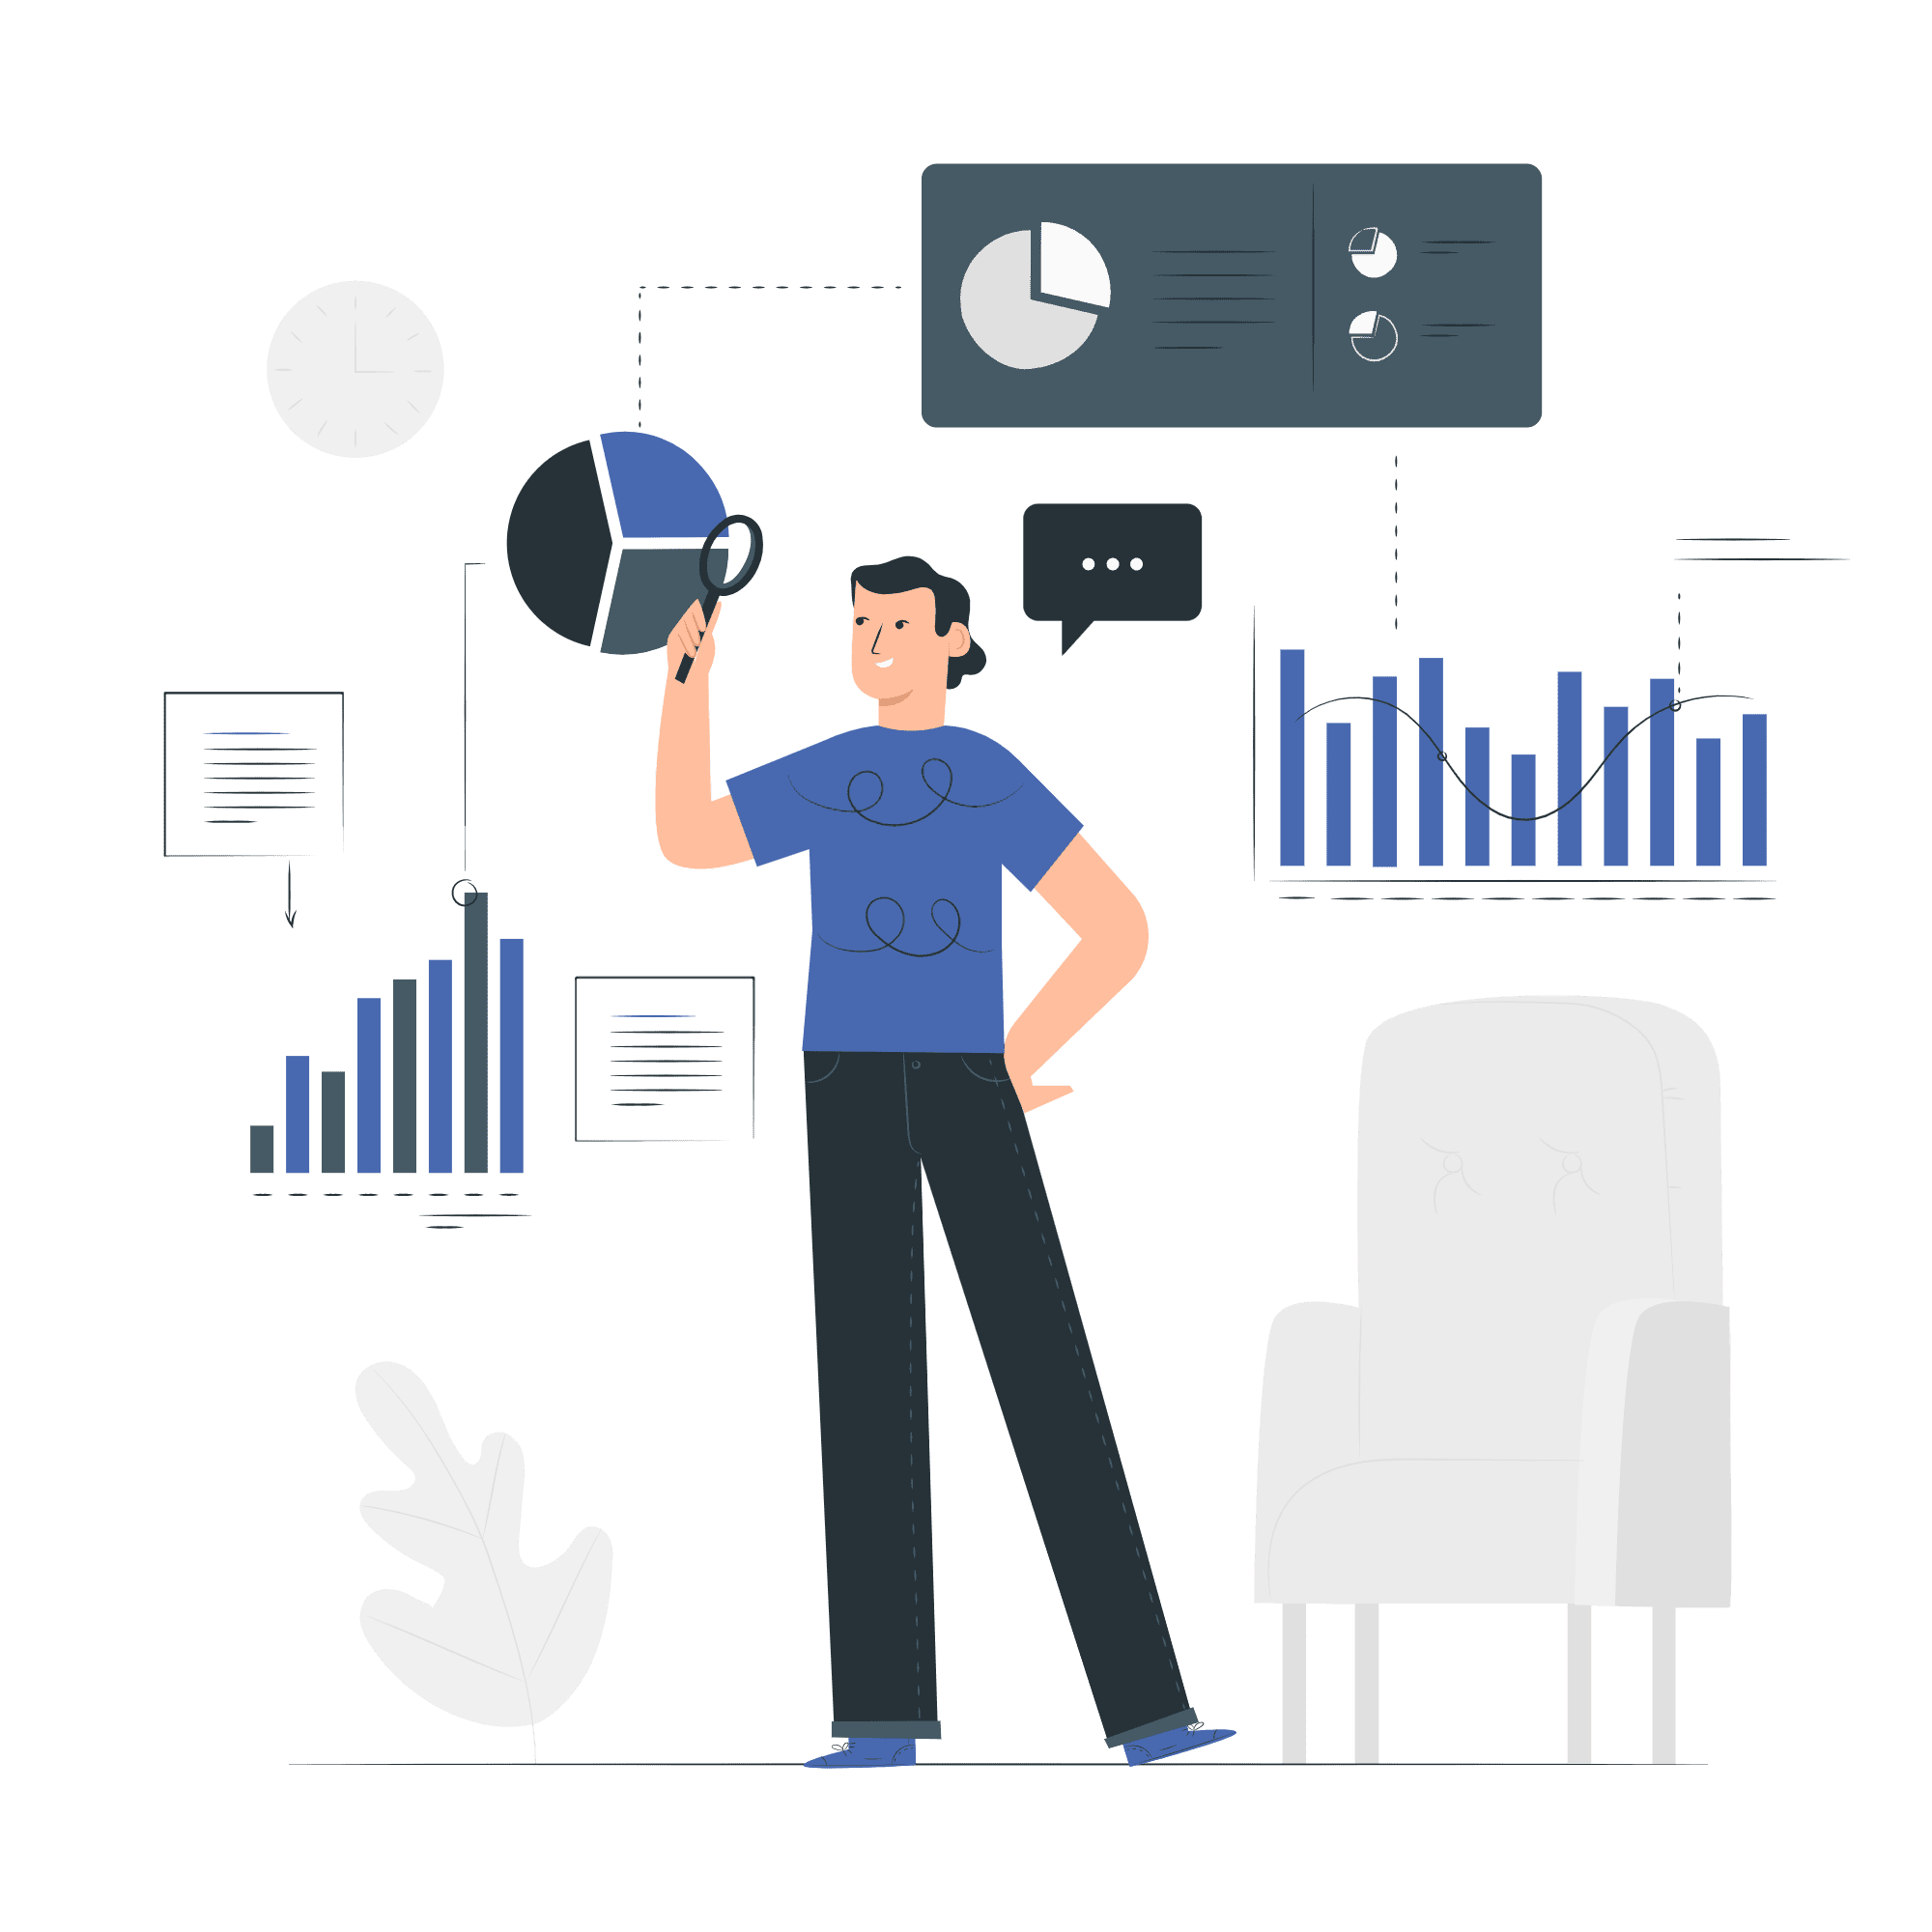 Audience Insights Vector Illustration